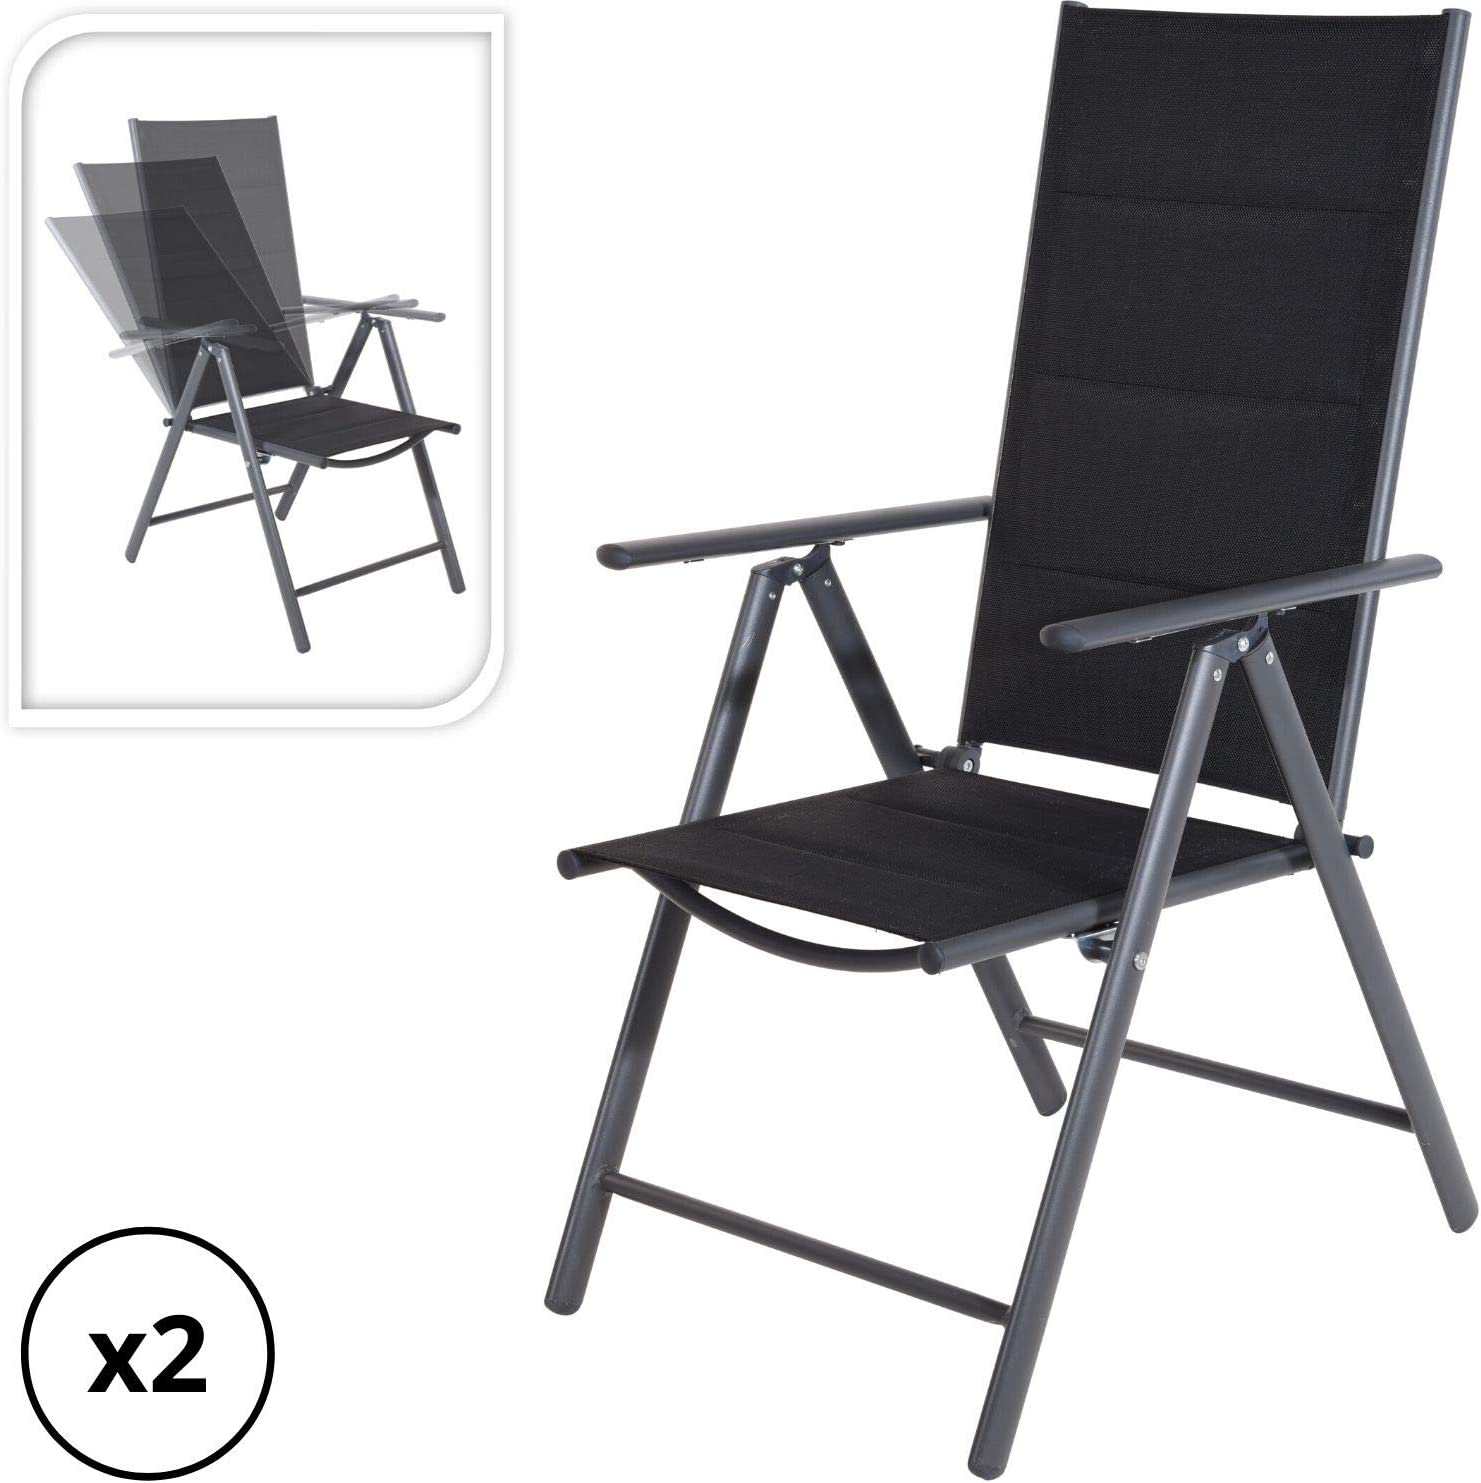 Dawsons Living 11-Position Adjustable Folding Outdoor Garden Chairs -  Reclining Garden Dining Chairs - Comfortable Seating (Pack of 11)